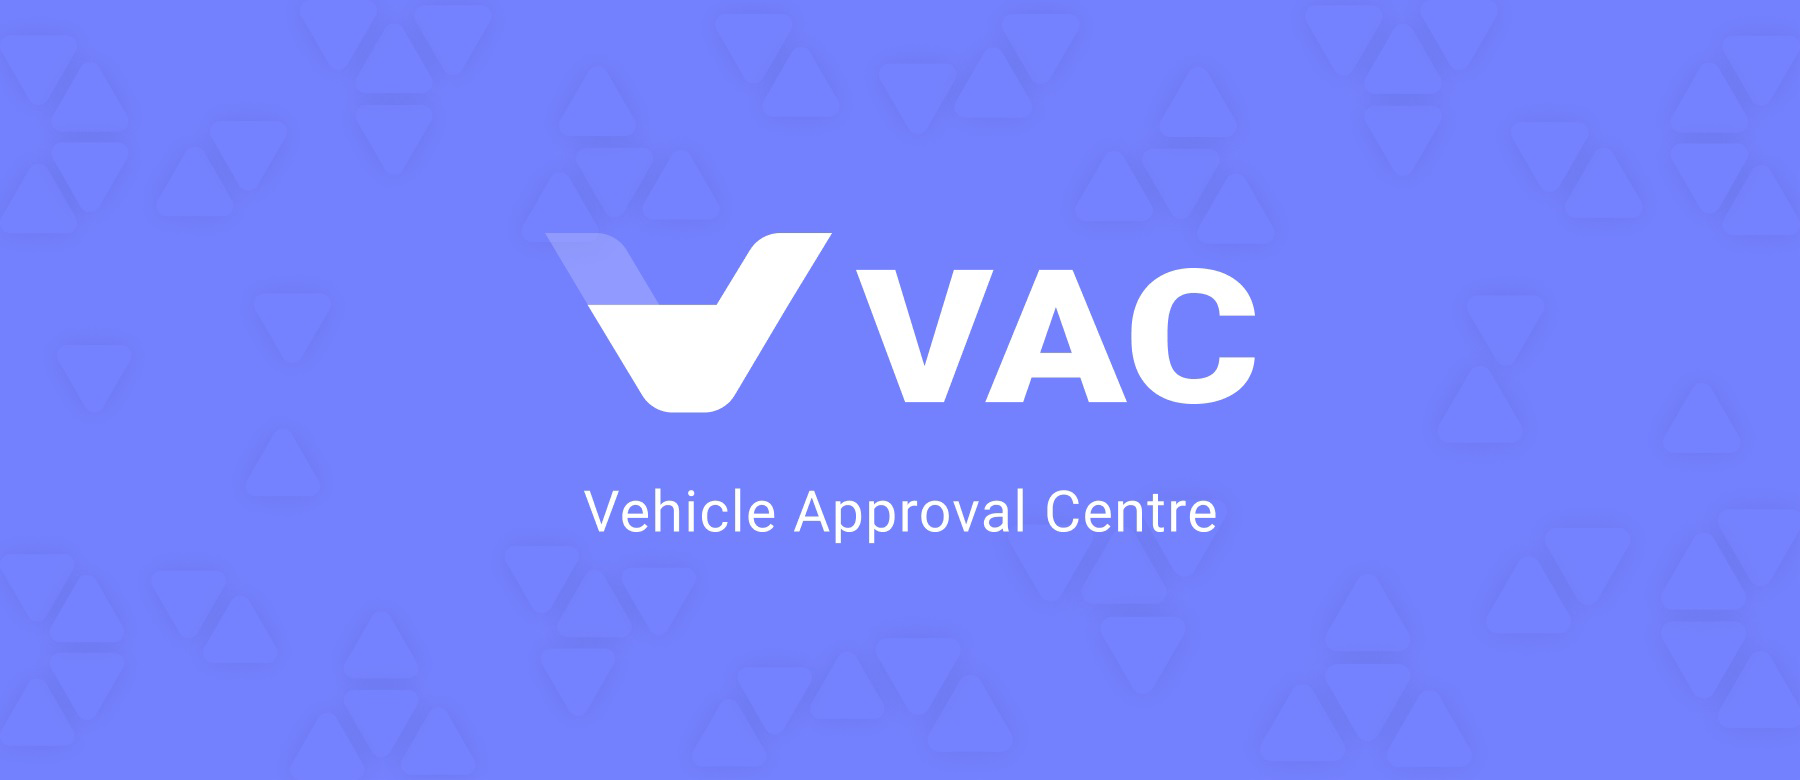 Vehicle Approval Centre